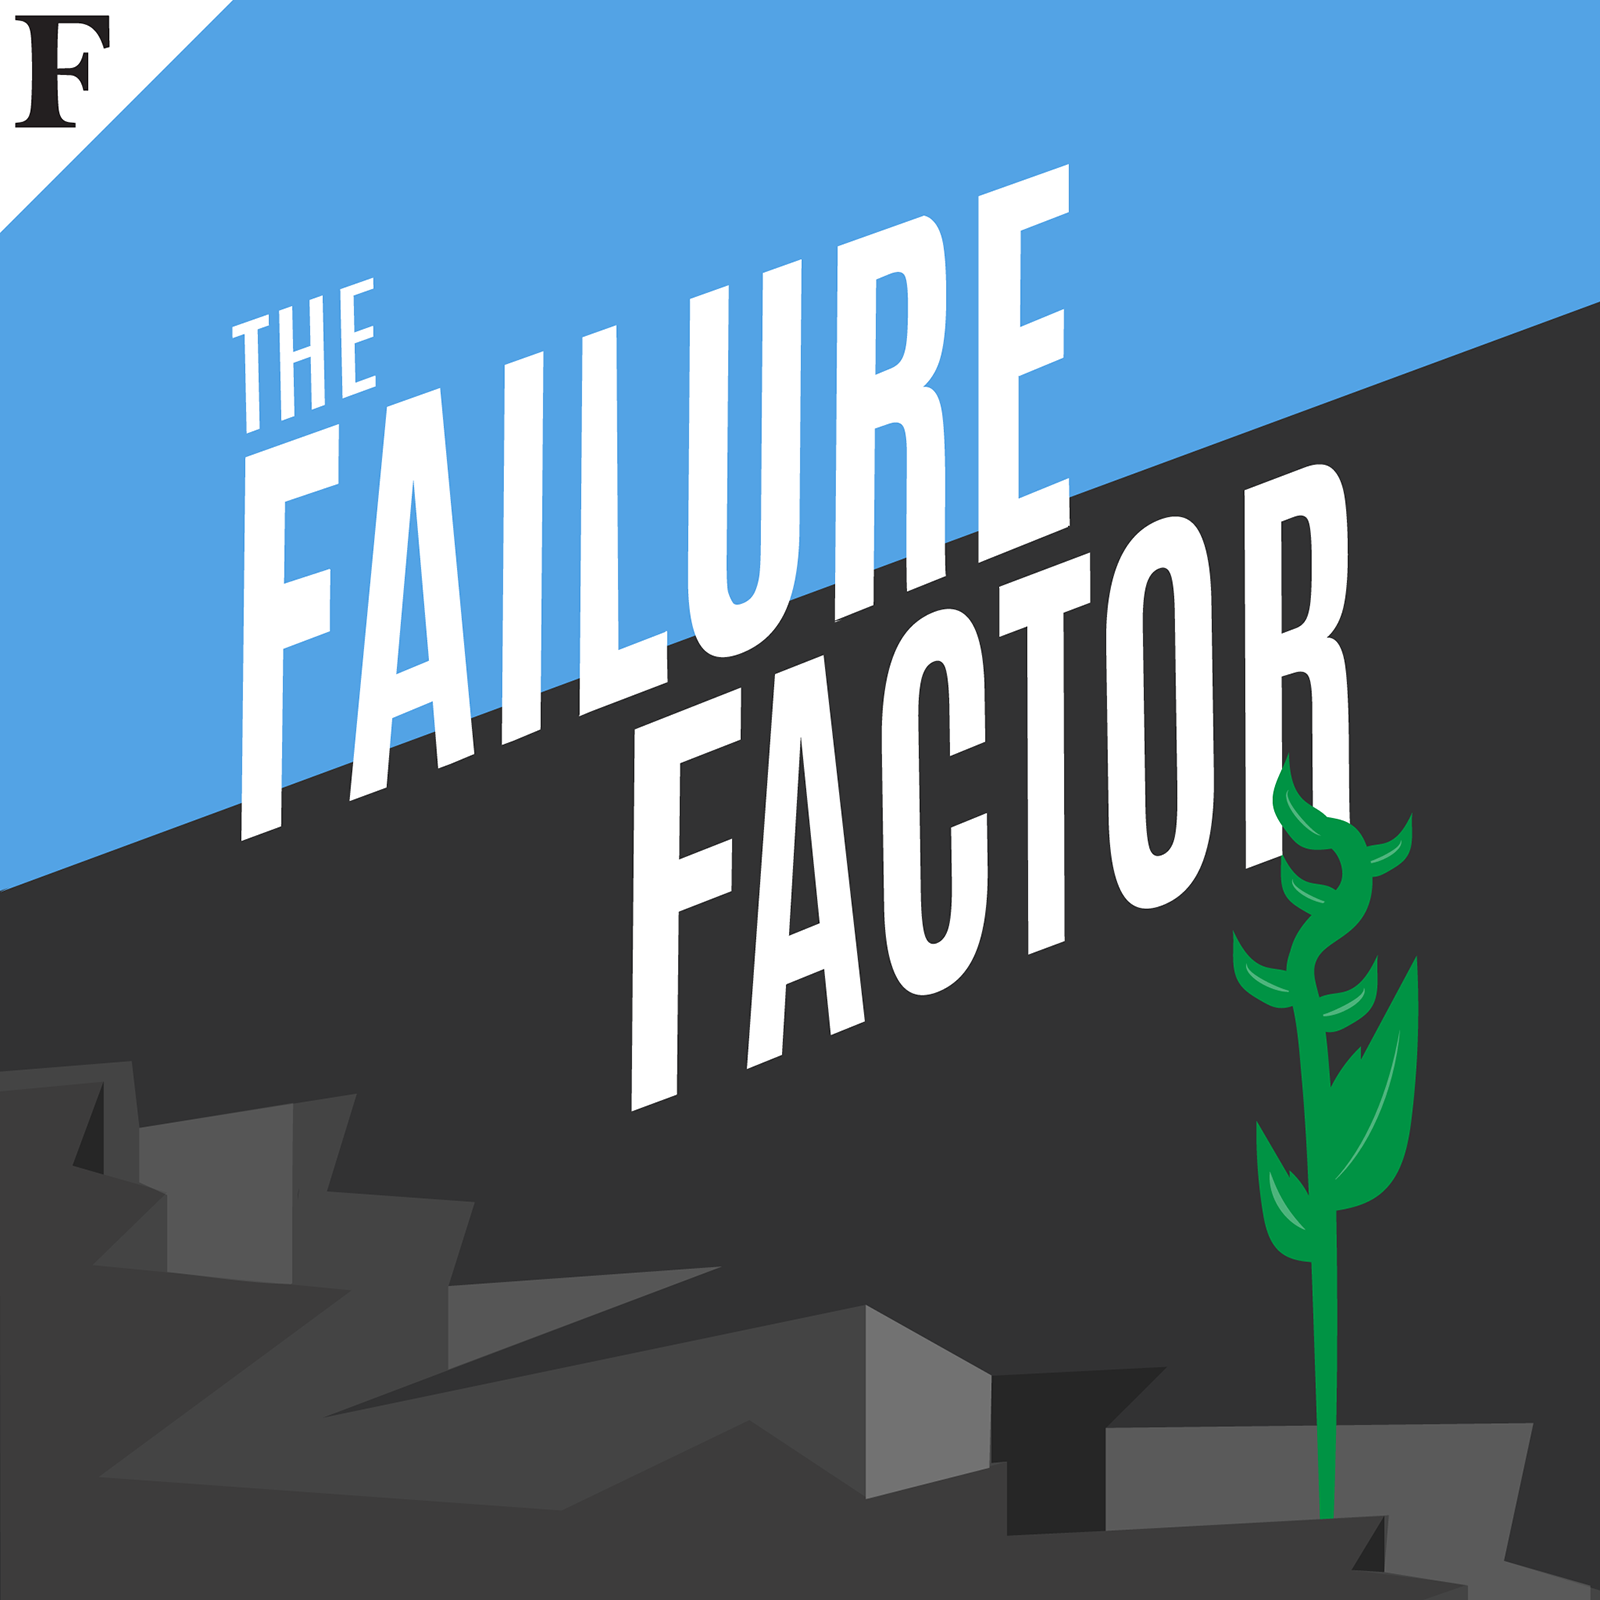 Failure Factor on true